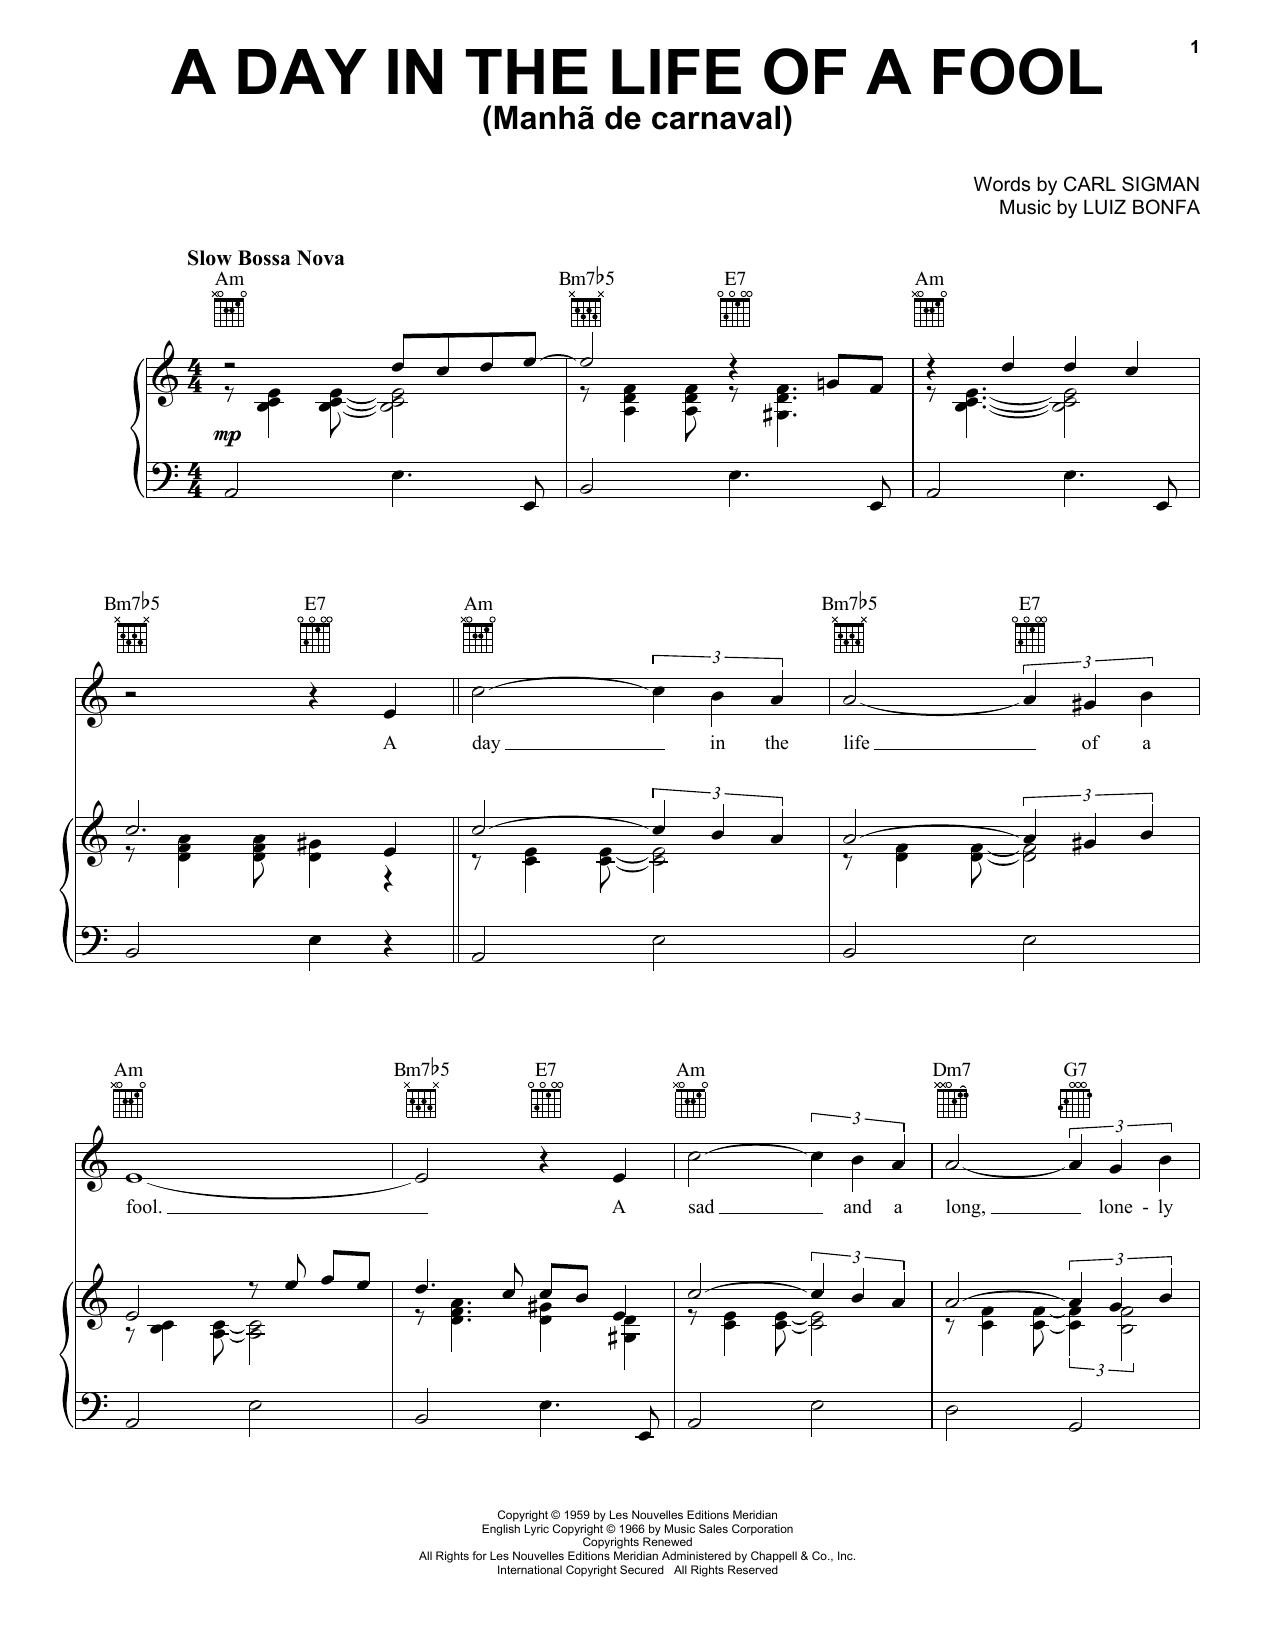 Day in the life of a fool manha de carnaval sheet music direct